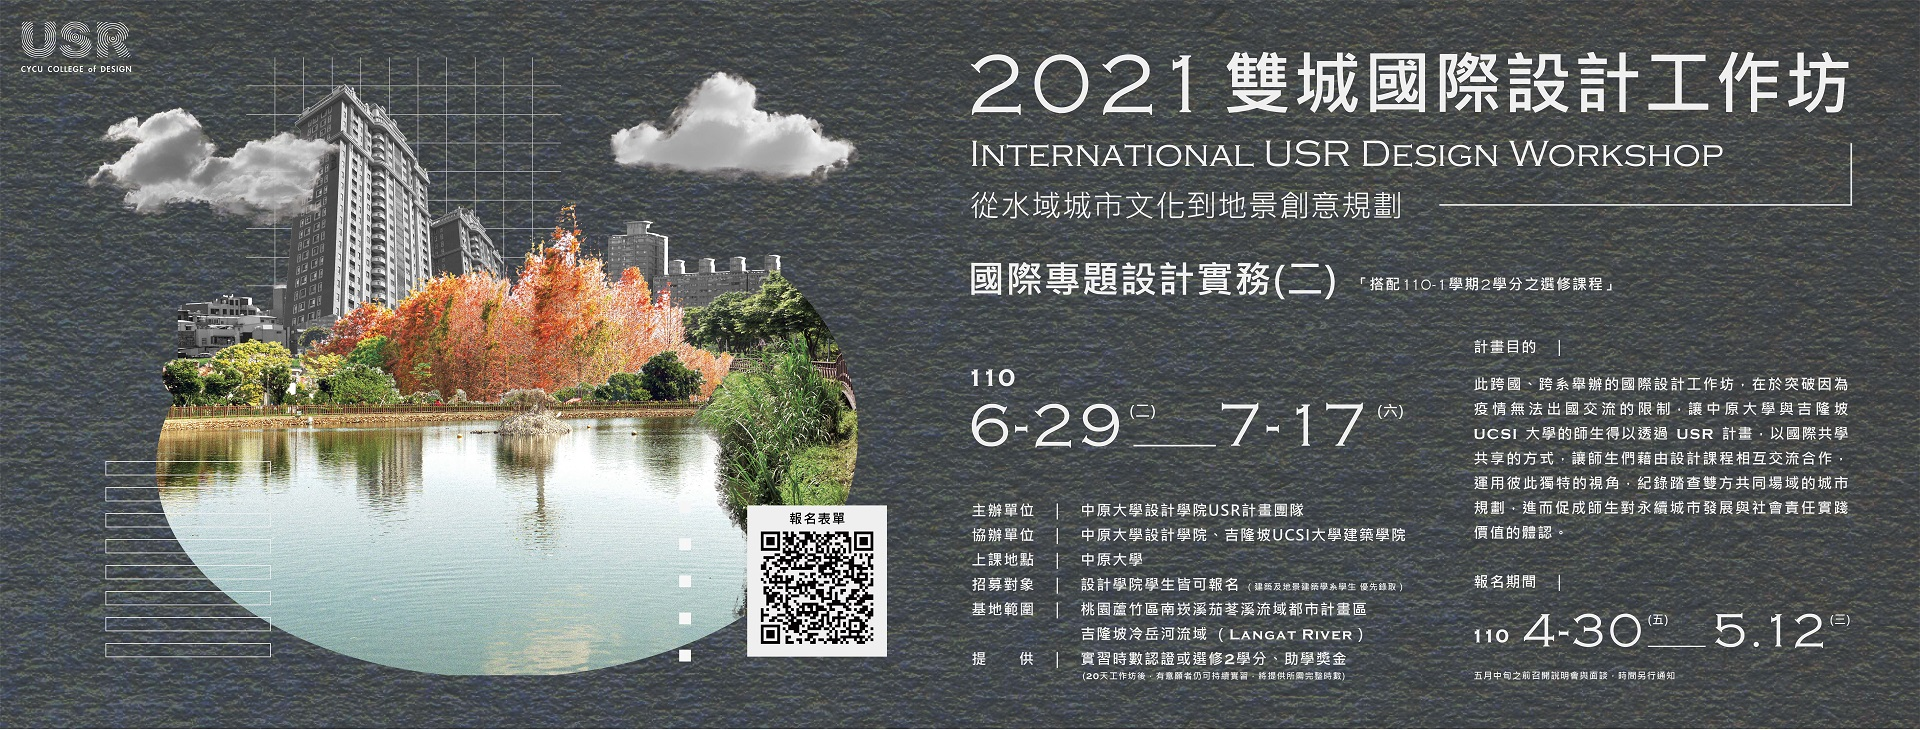 2021雙城國際設計工作坊 (International USR Design Workshop)